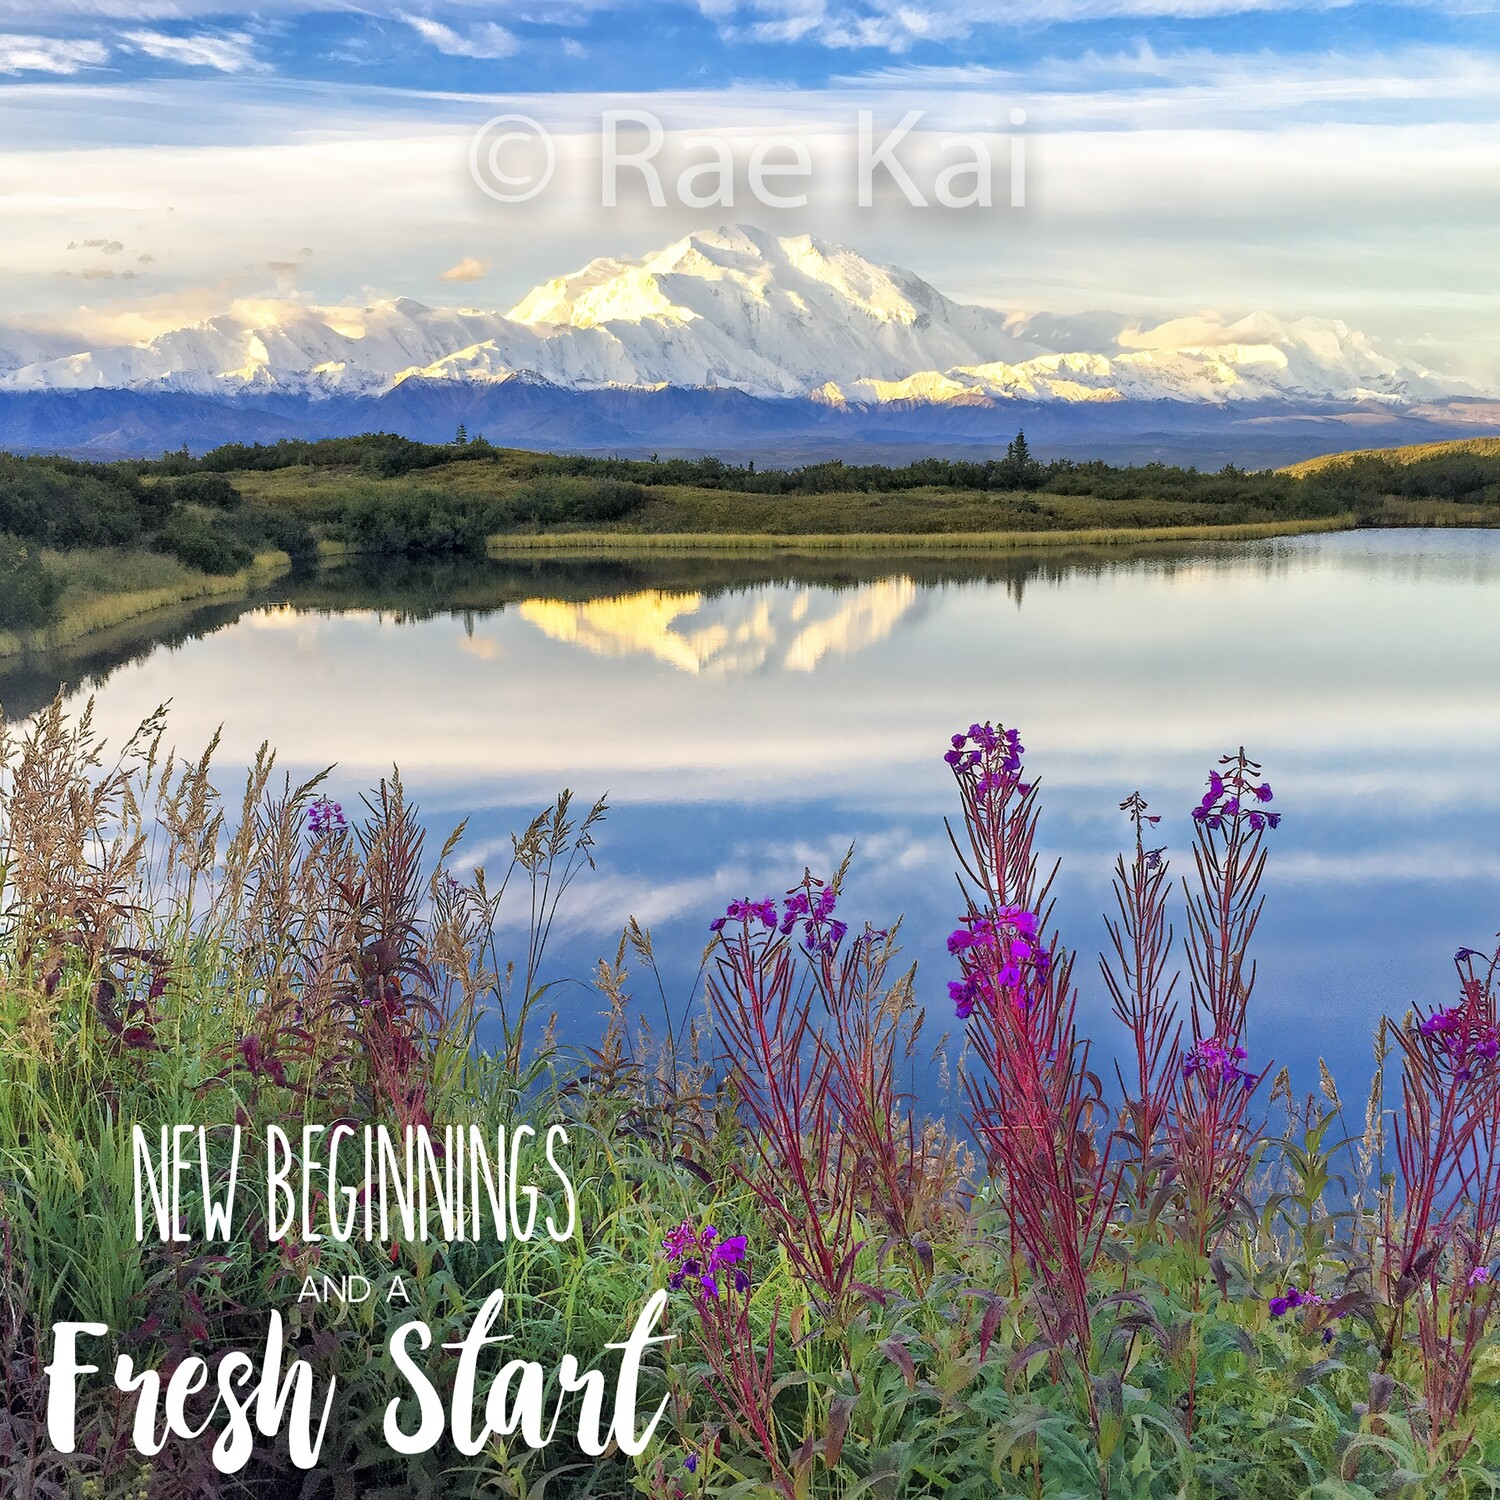 New Beginnings And A Fresh Start-Inspirational Square Photo